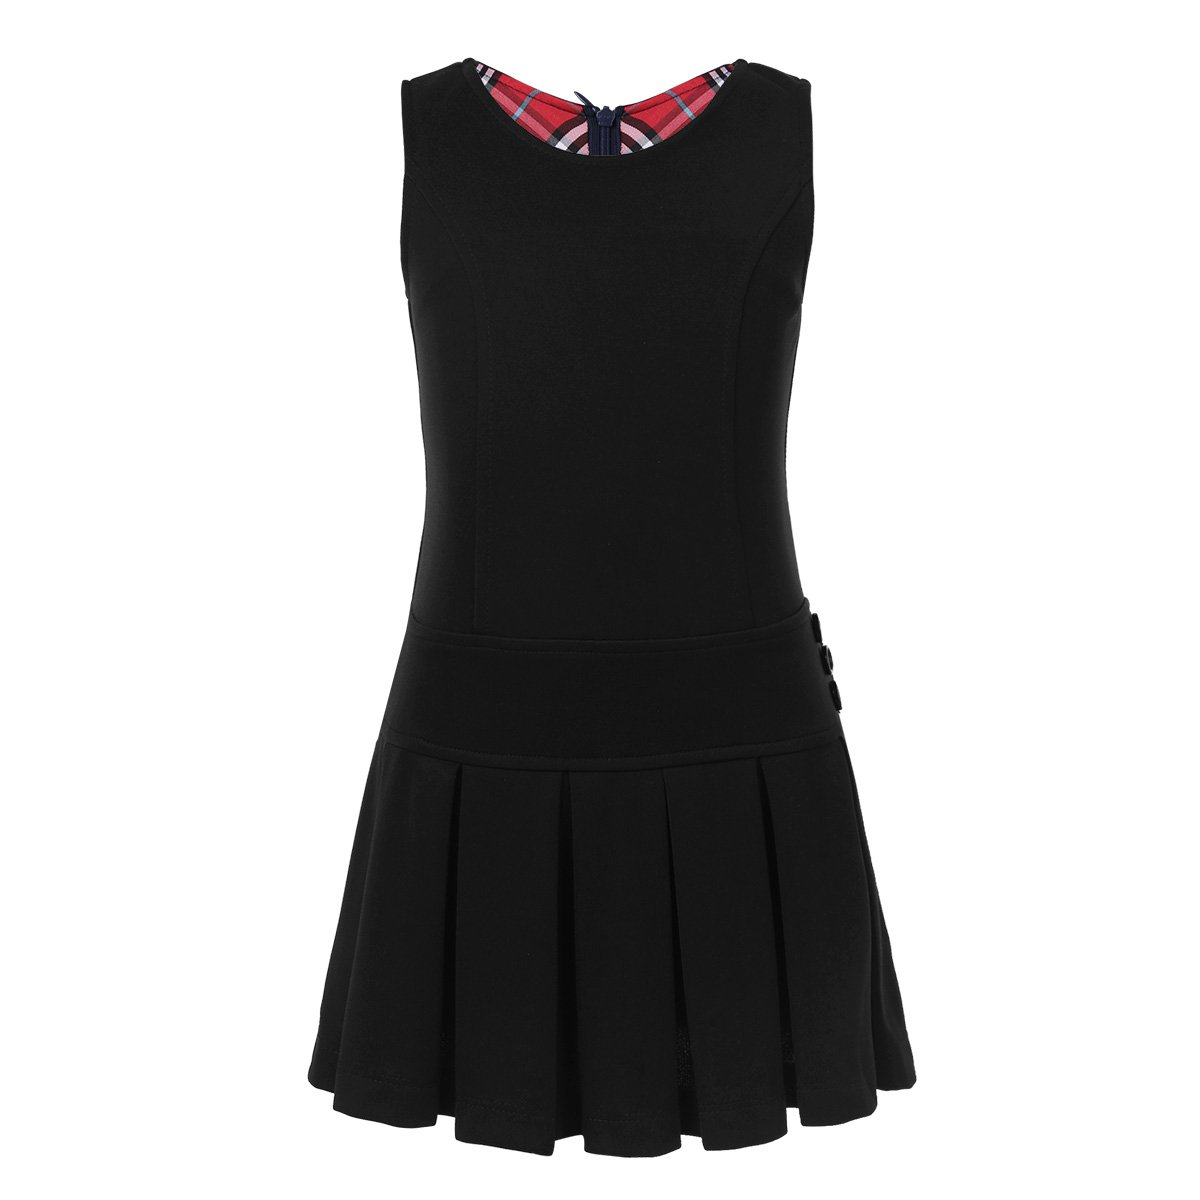 YiZYiF Girls' Kids' Stretchy Pleated Hem Durable School Uniform Jumper Dress Skirt Size 2-9 Black 5-6